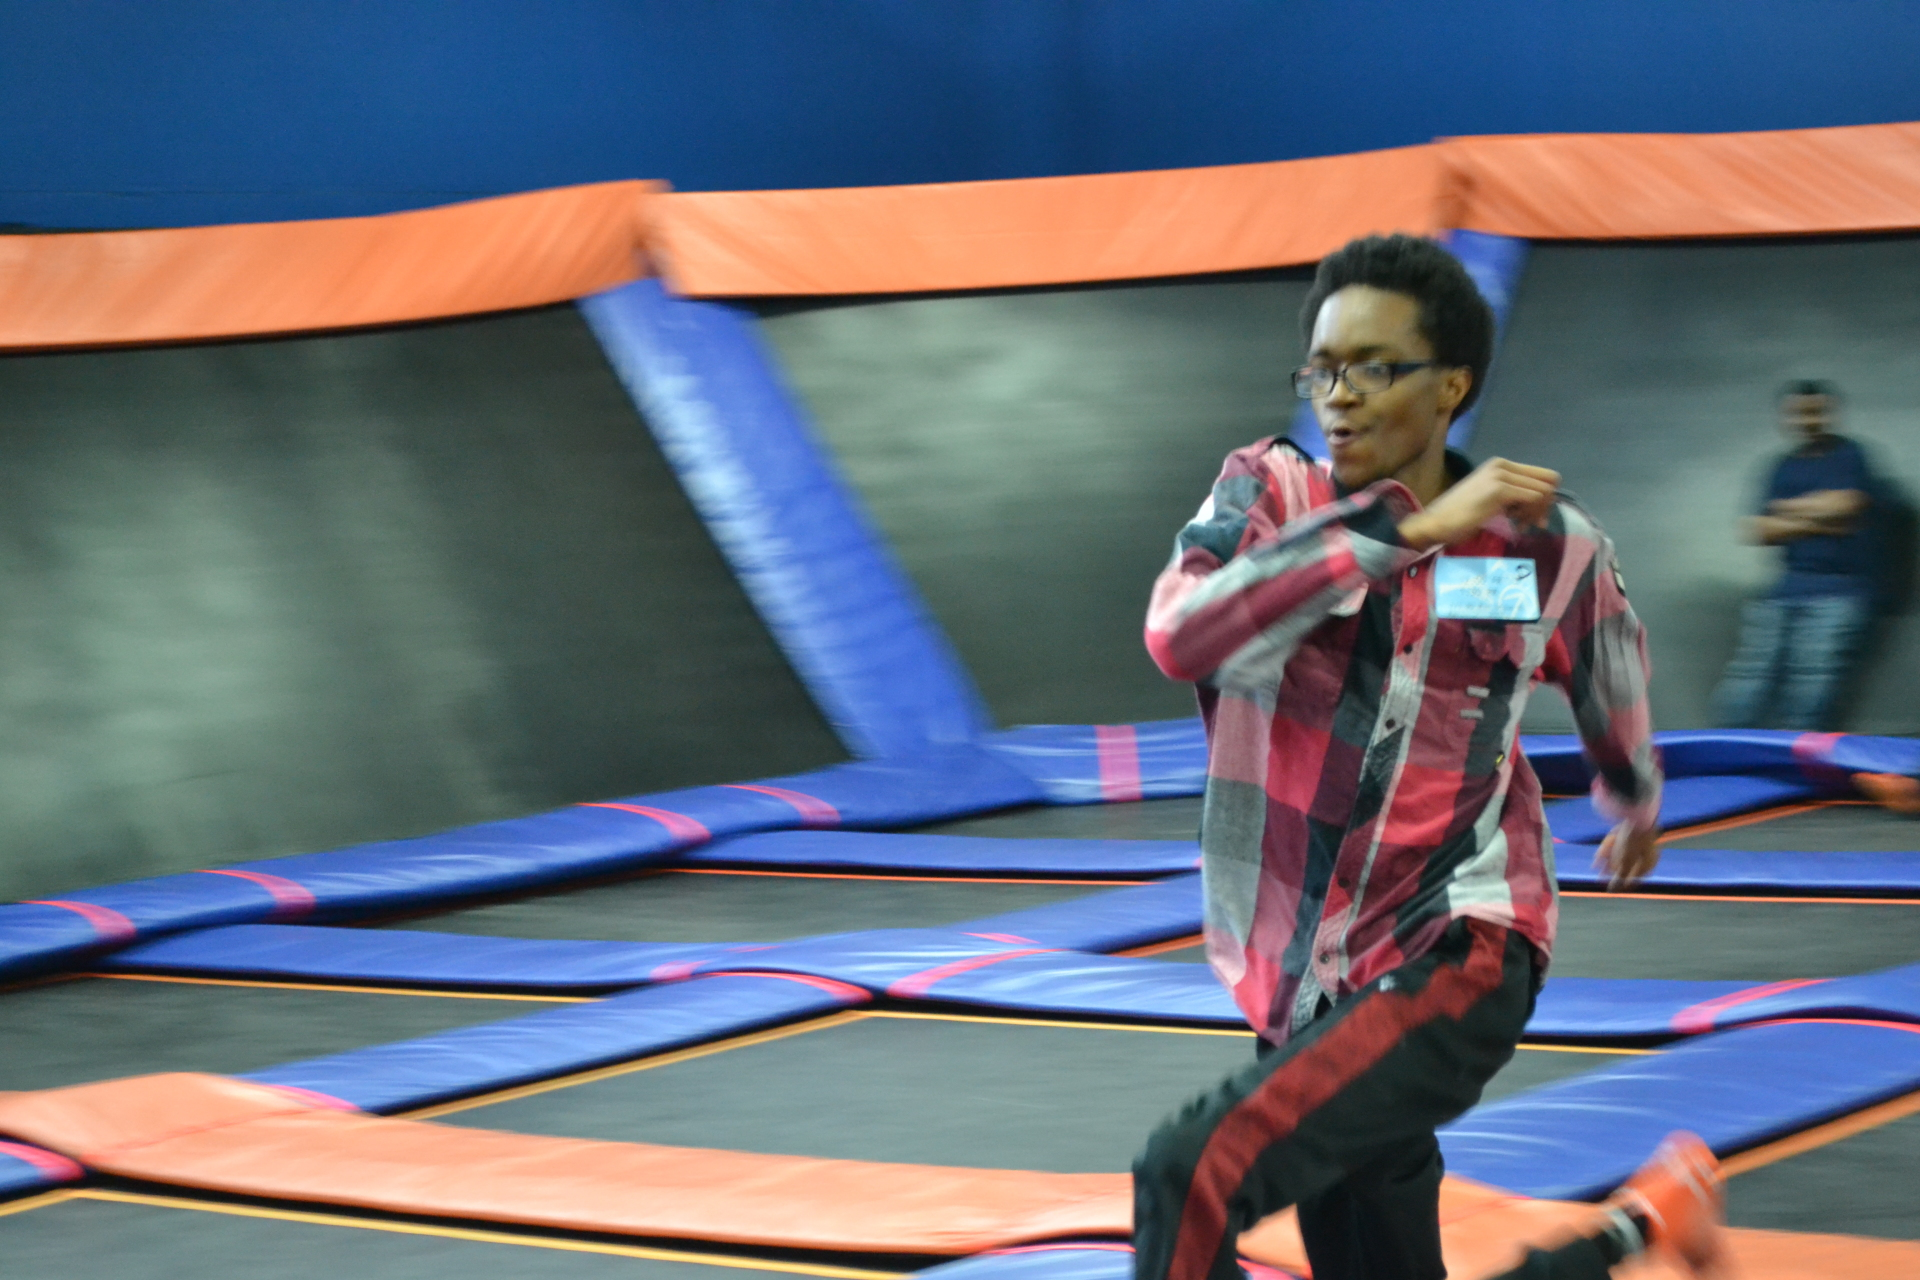 EYB Excursion: Teambuilding@SkyZone